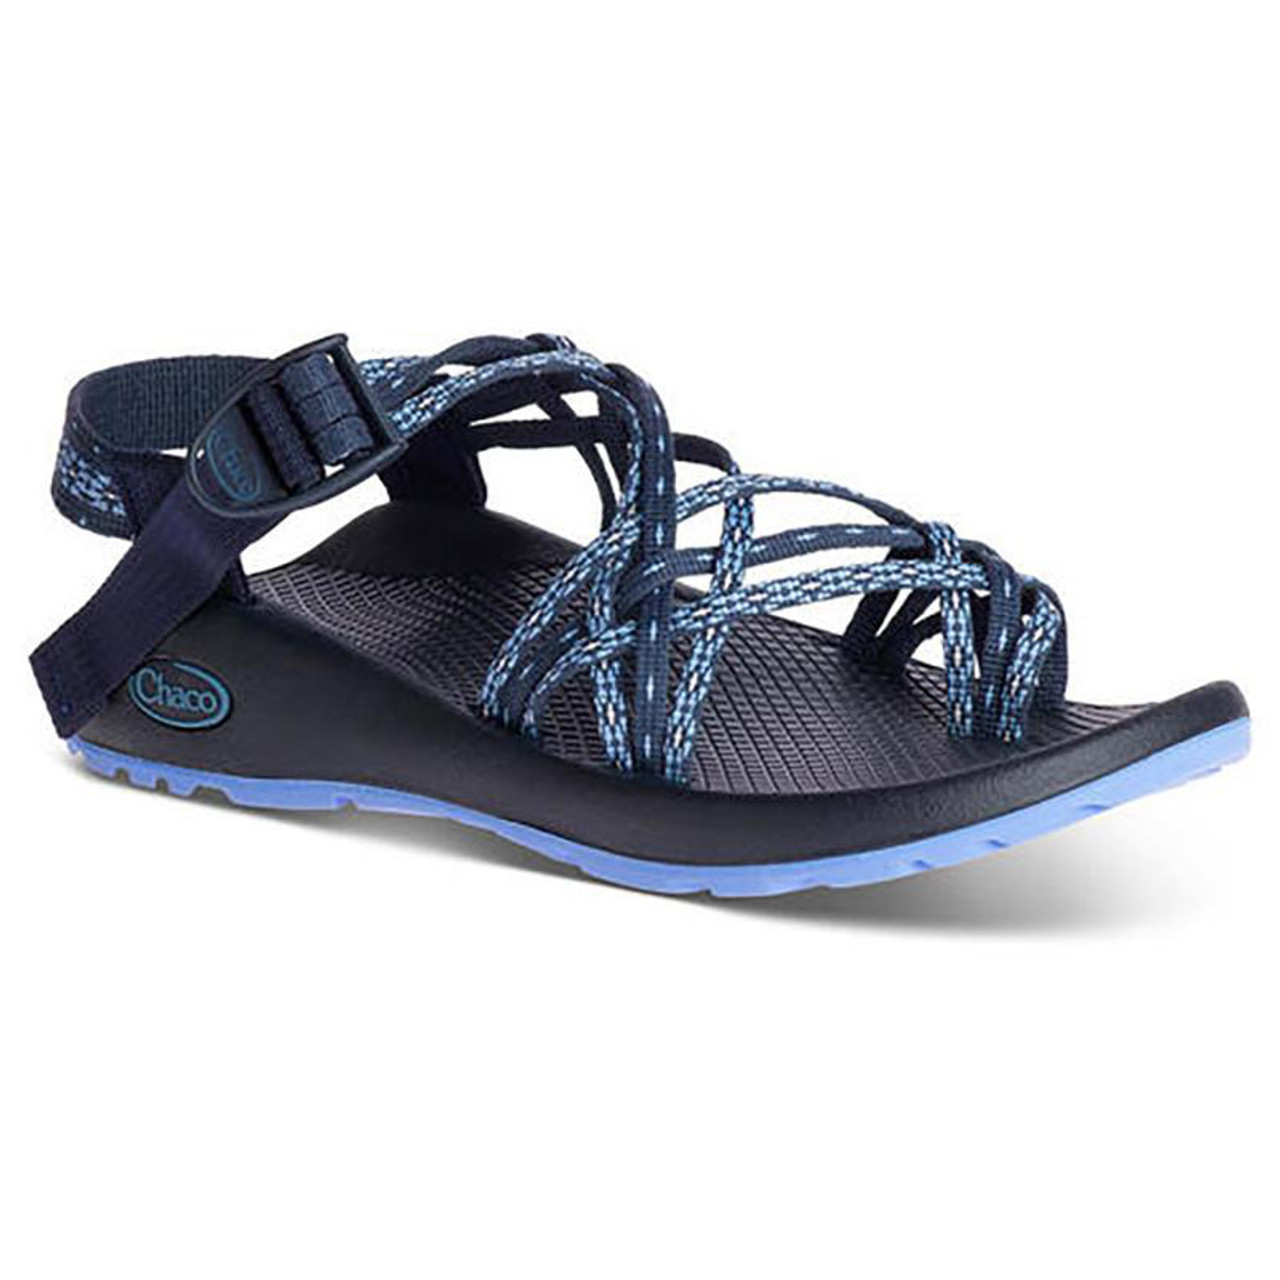 279623294eab Chaco Women s Sandal - ZX 3 Classic - Hollow Eclipse - Surf and Dirt